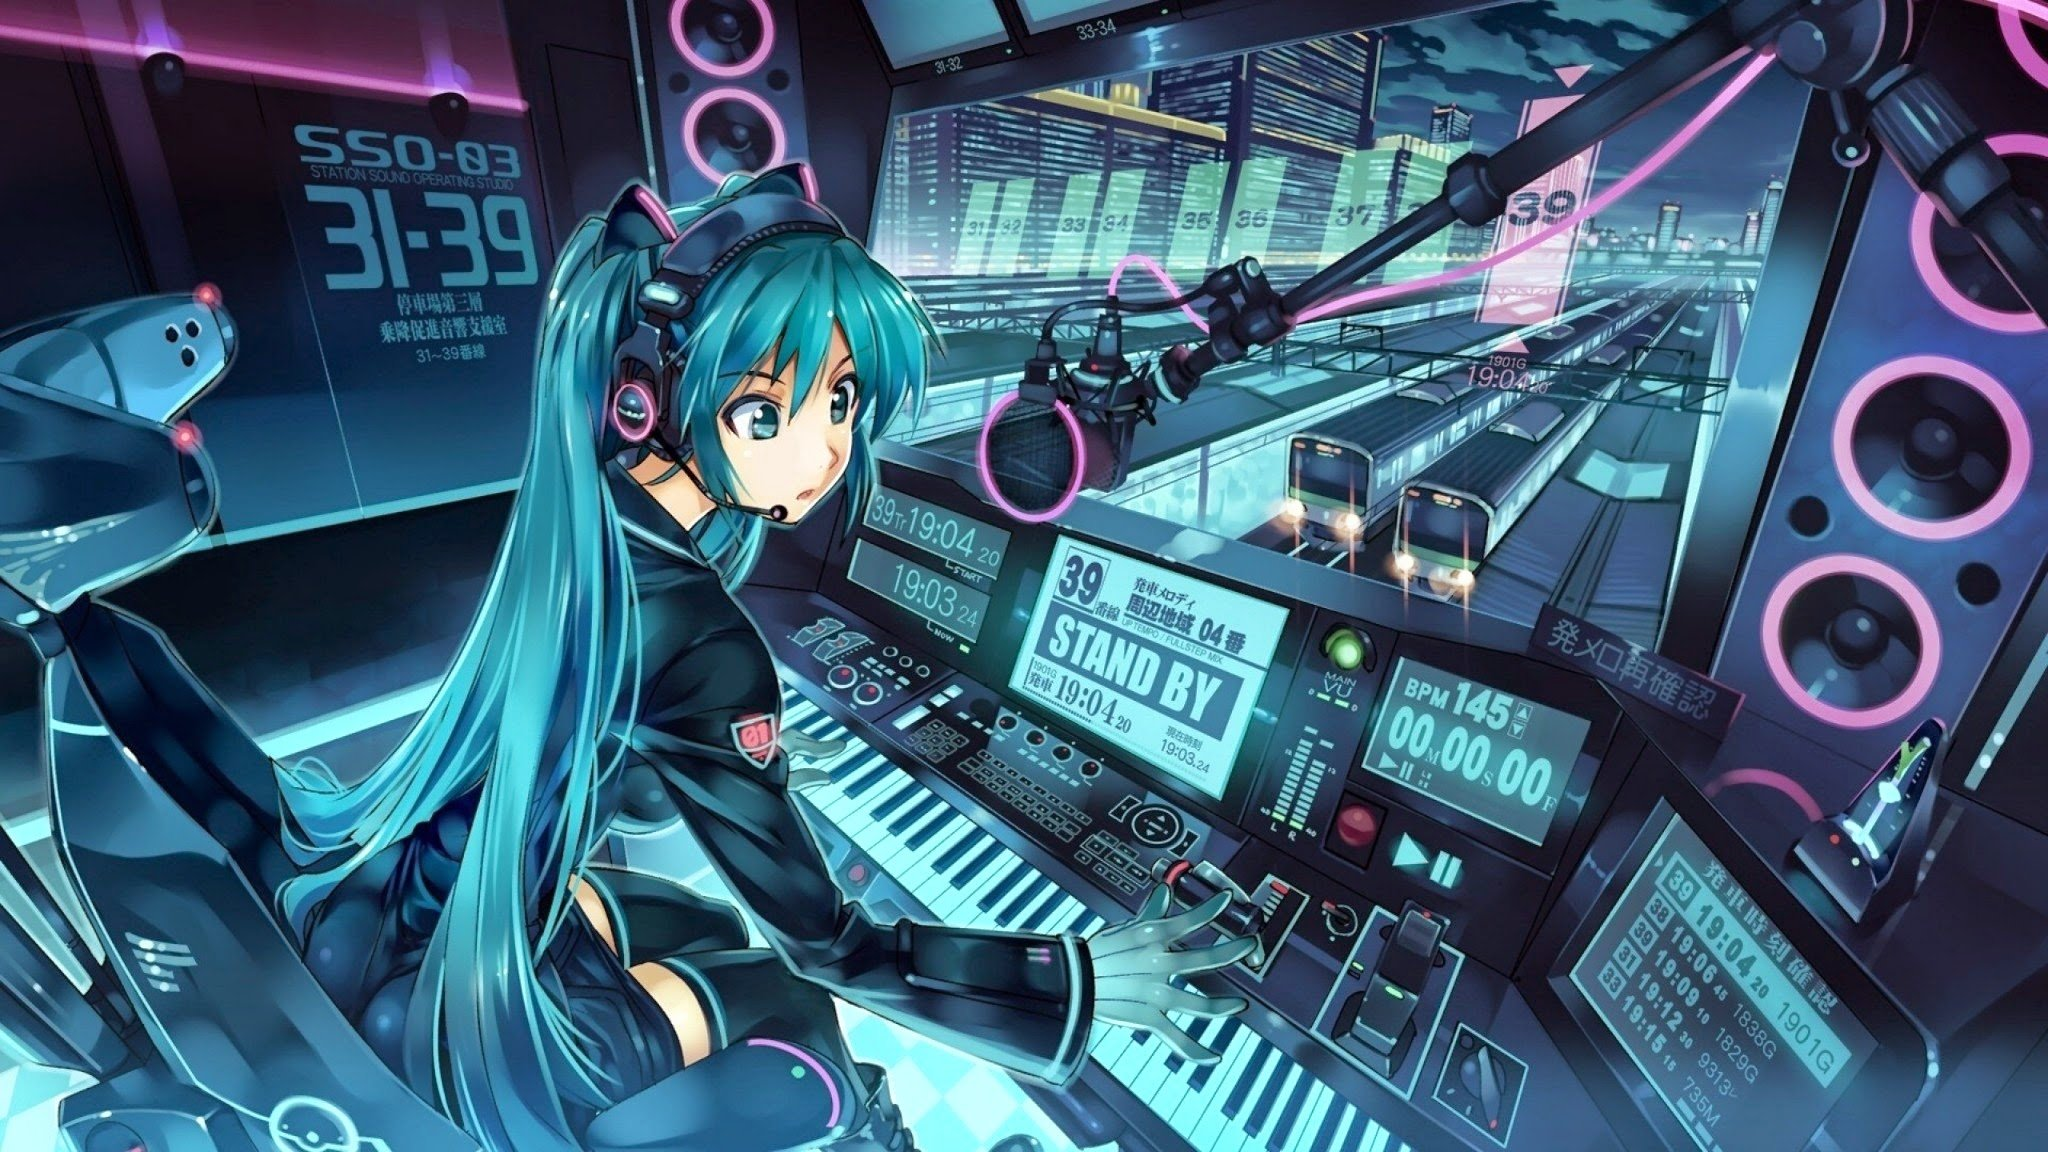 Animated techno wallpaper wallpapersafari - Wallpaper manga anime ...